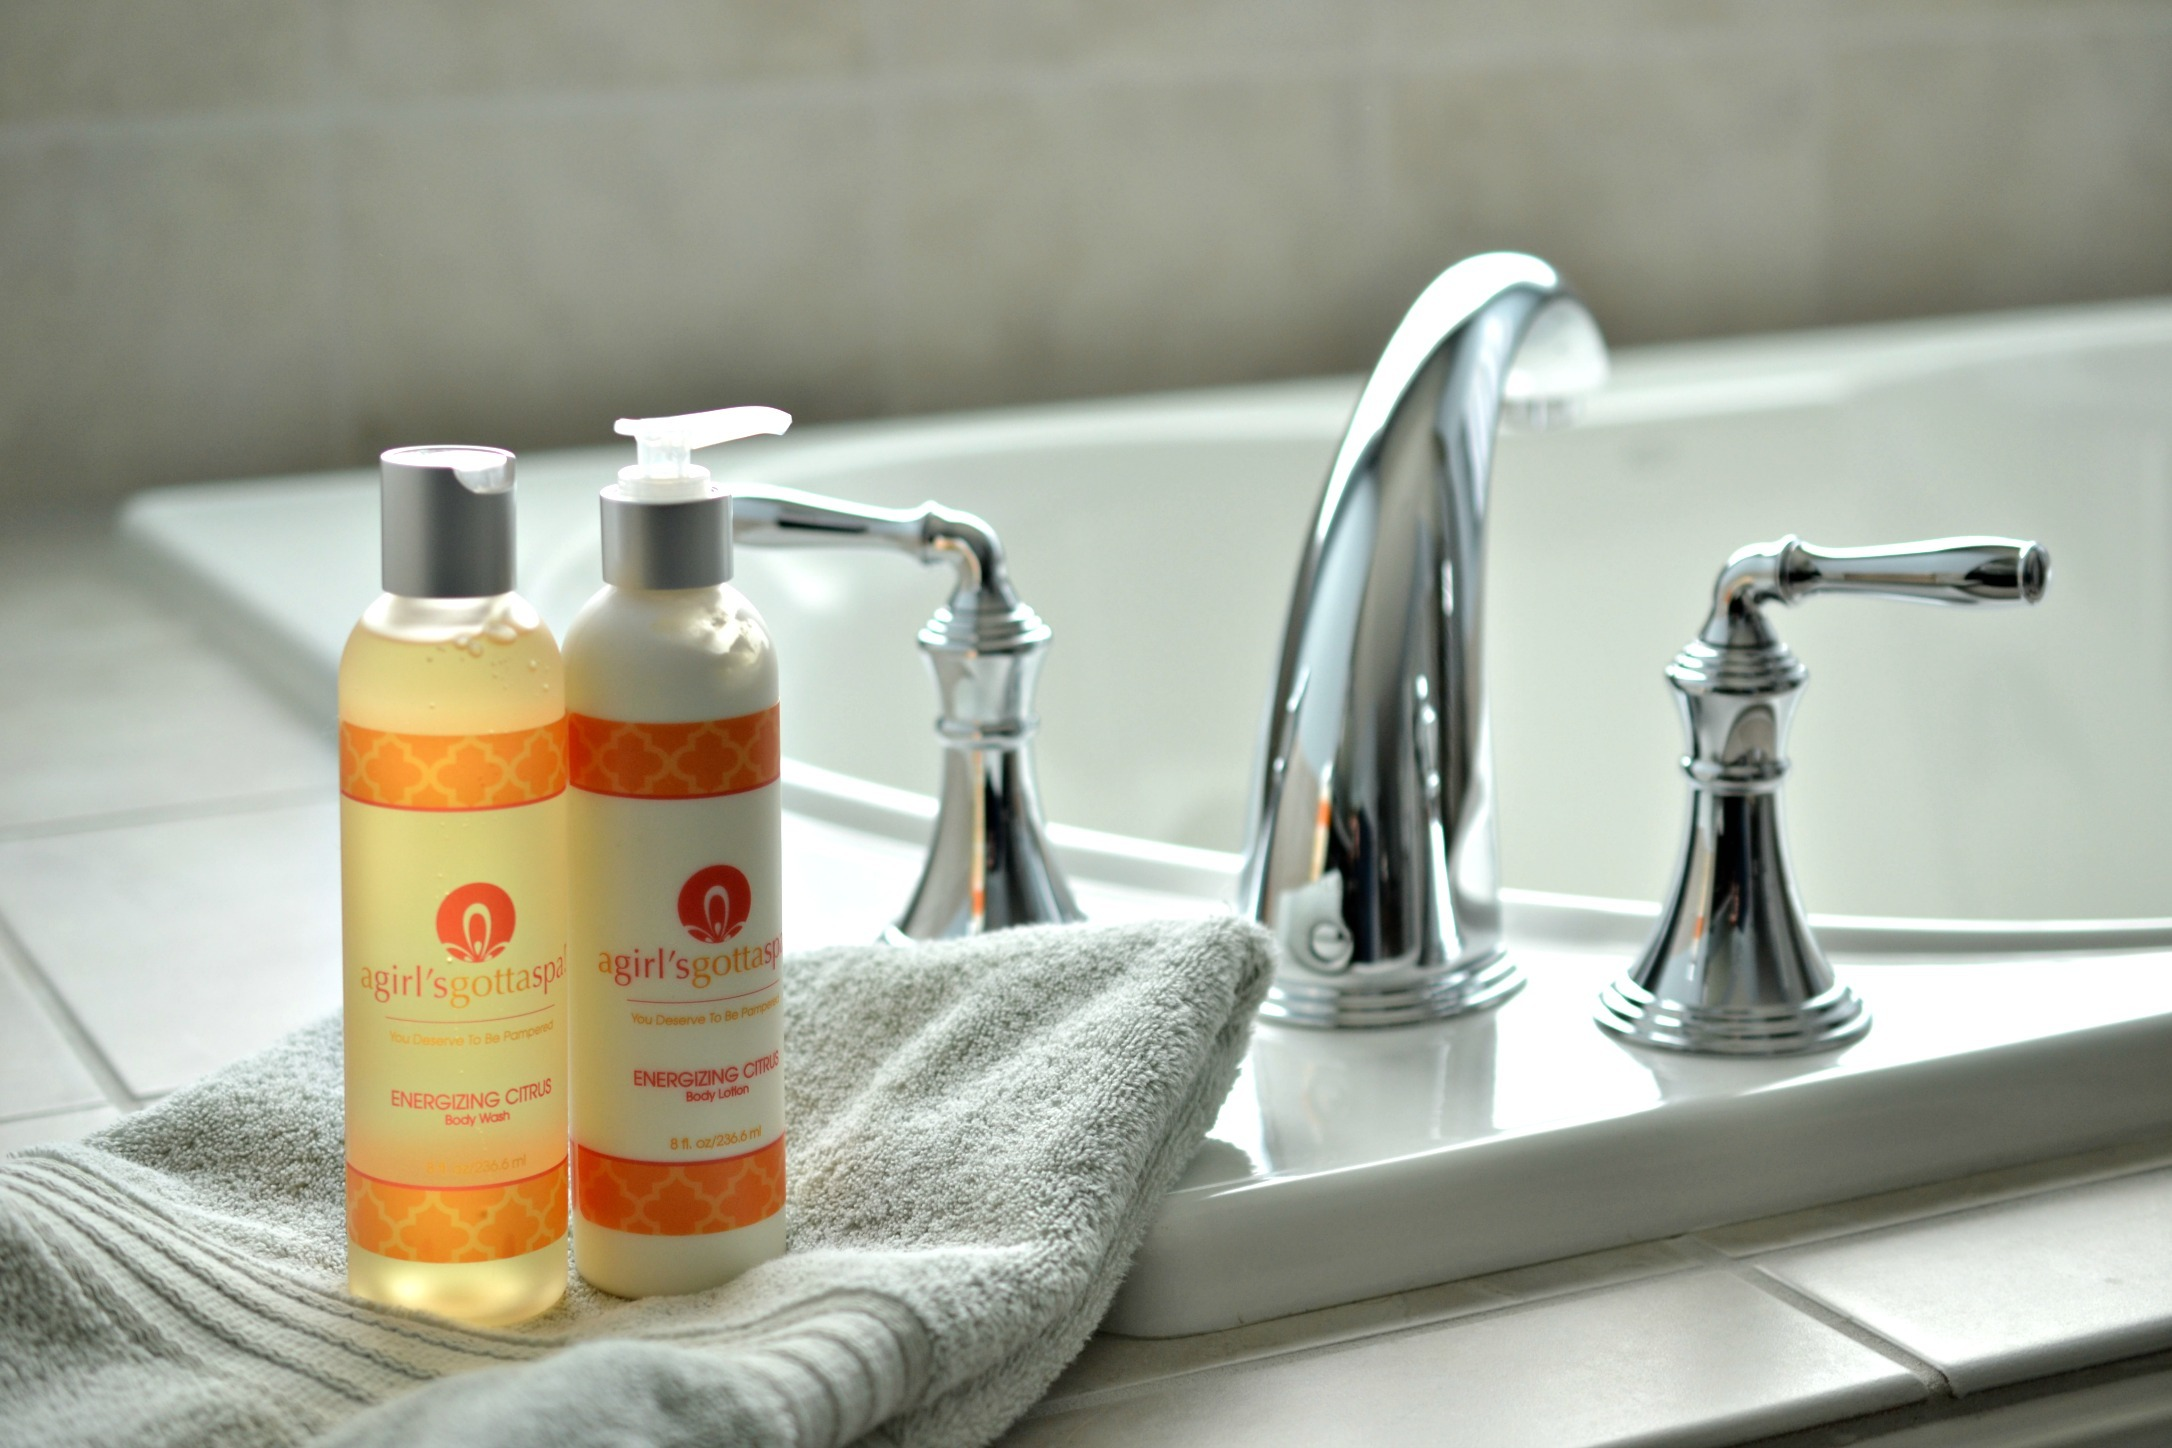 Energizing Citrus Body Wash